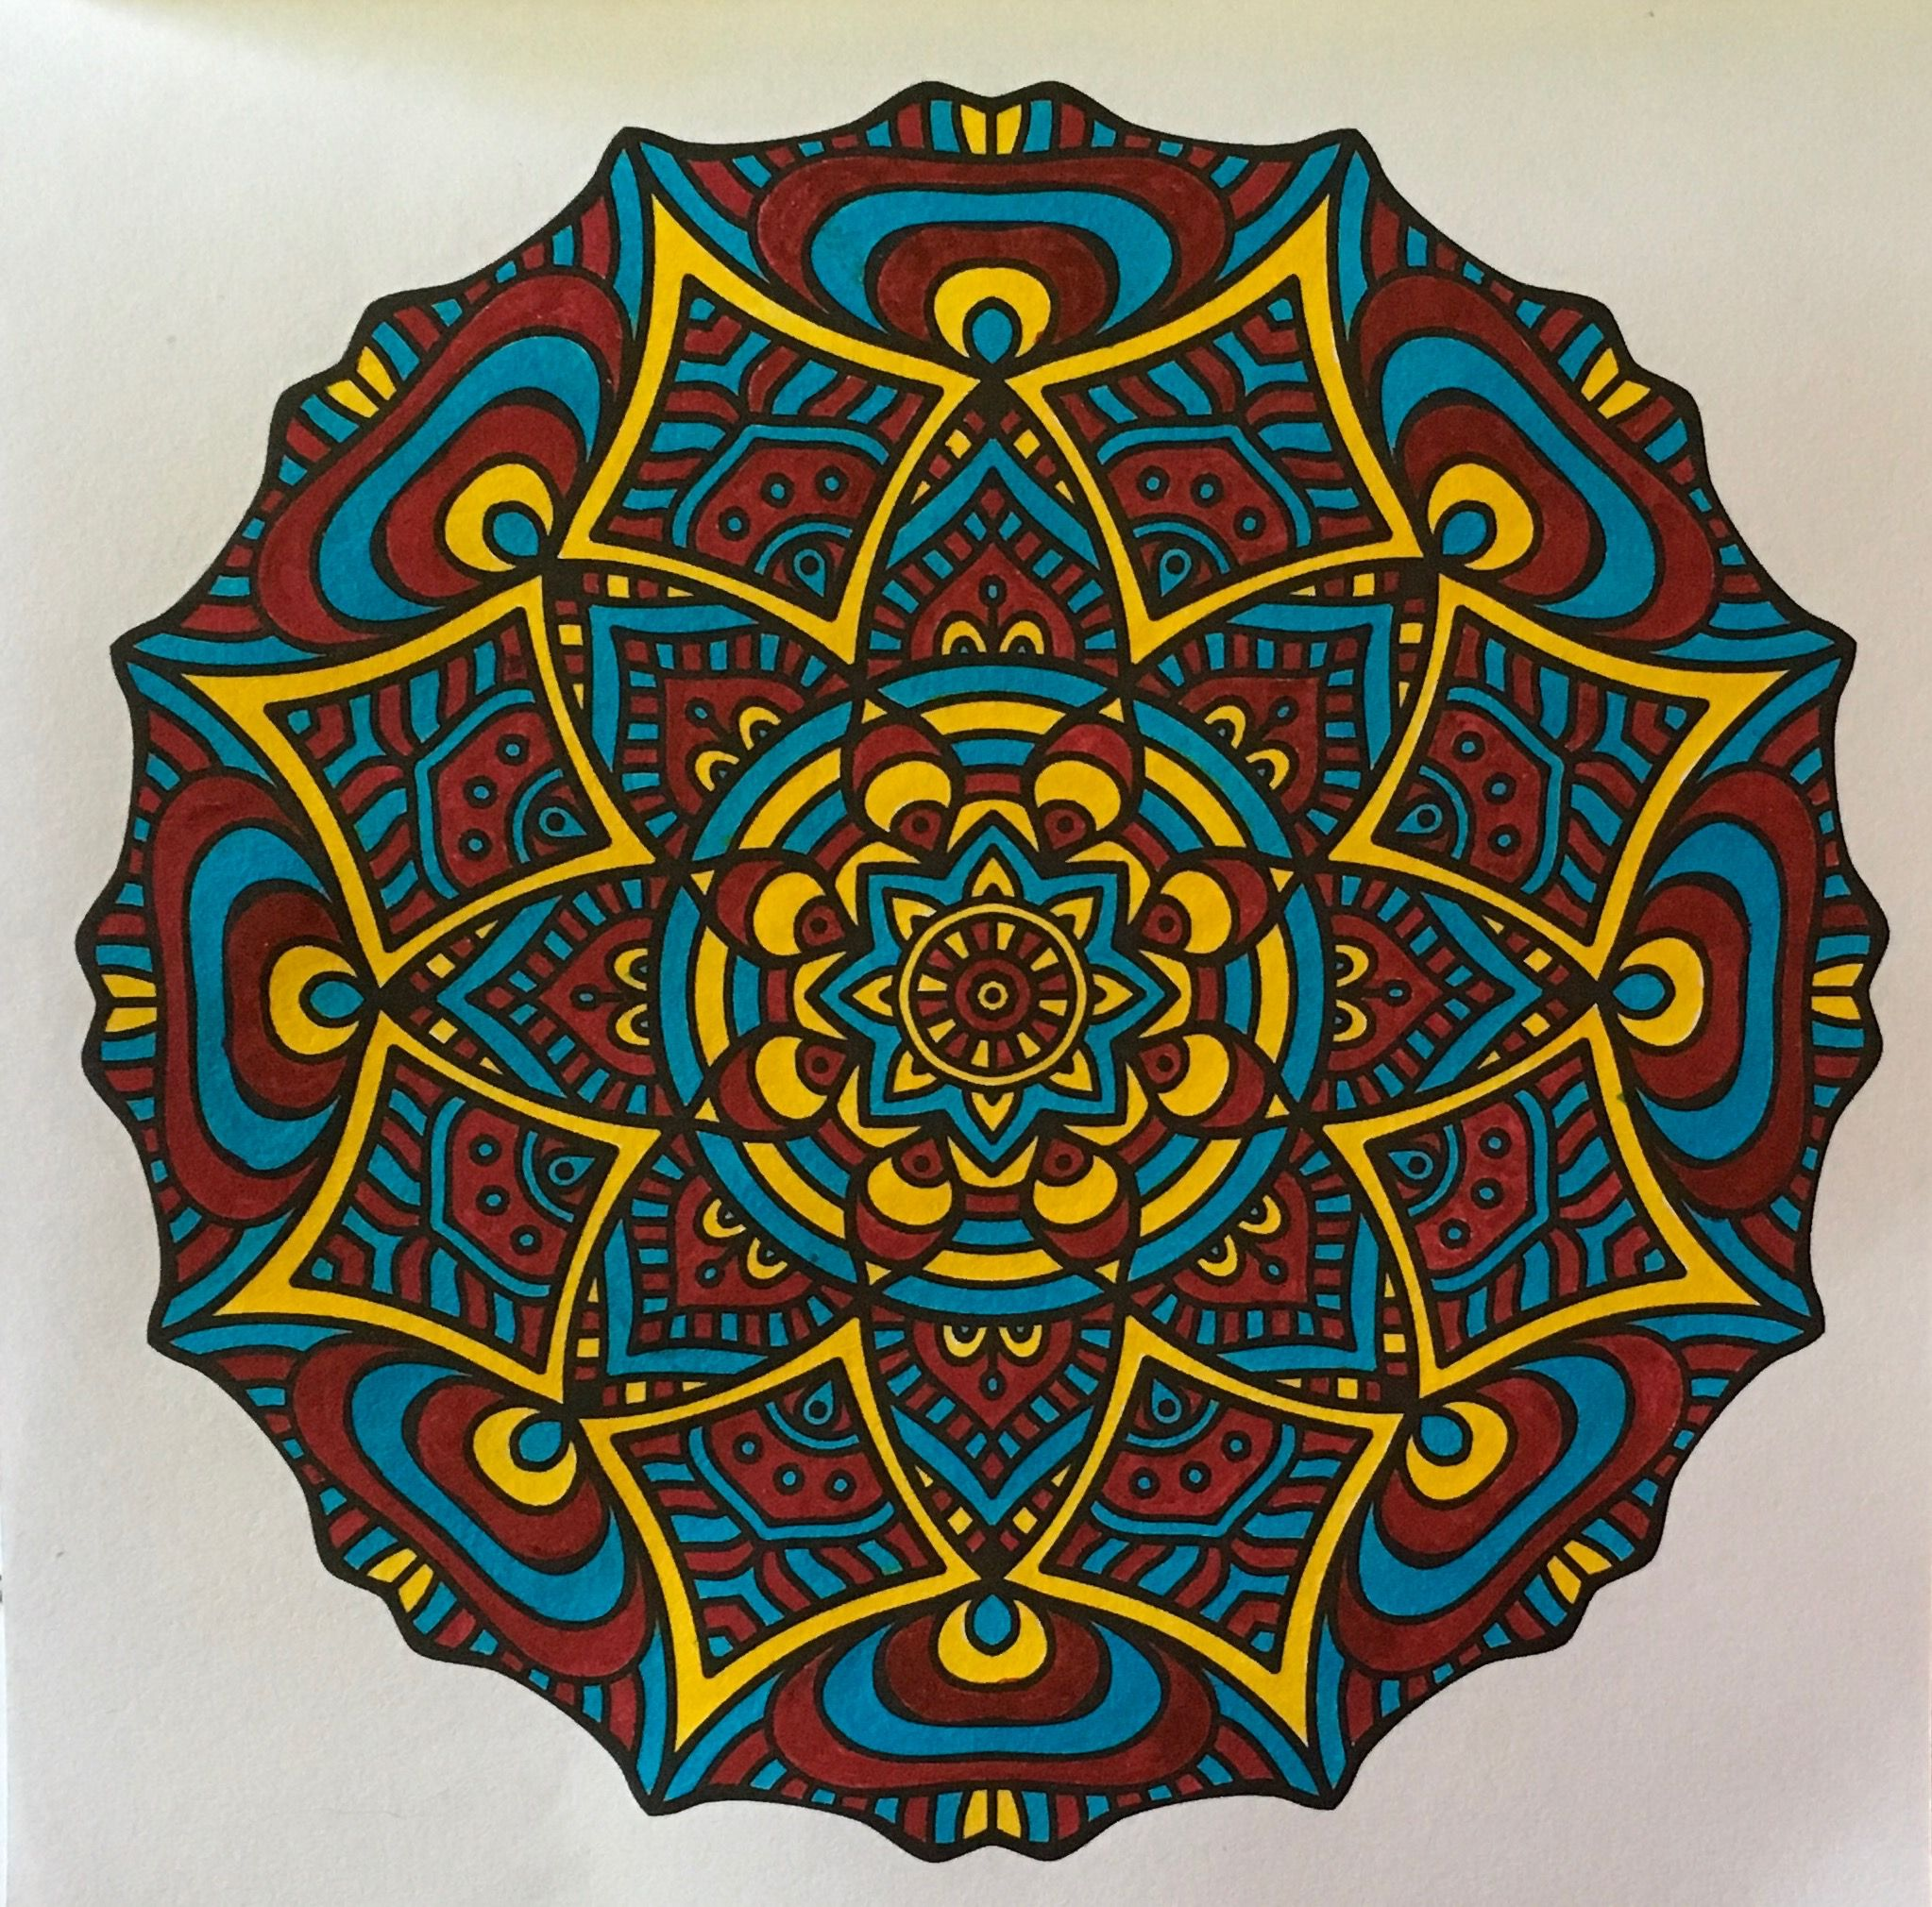 A Mandala From Pocket Coloring Book Mini Zen Creations For Portable Relaxation And